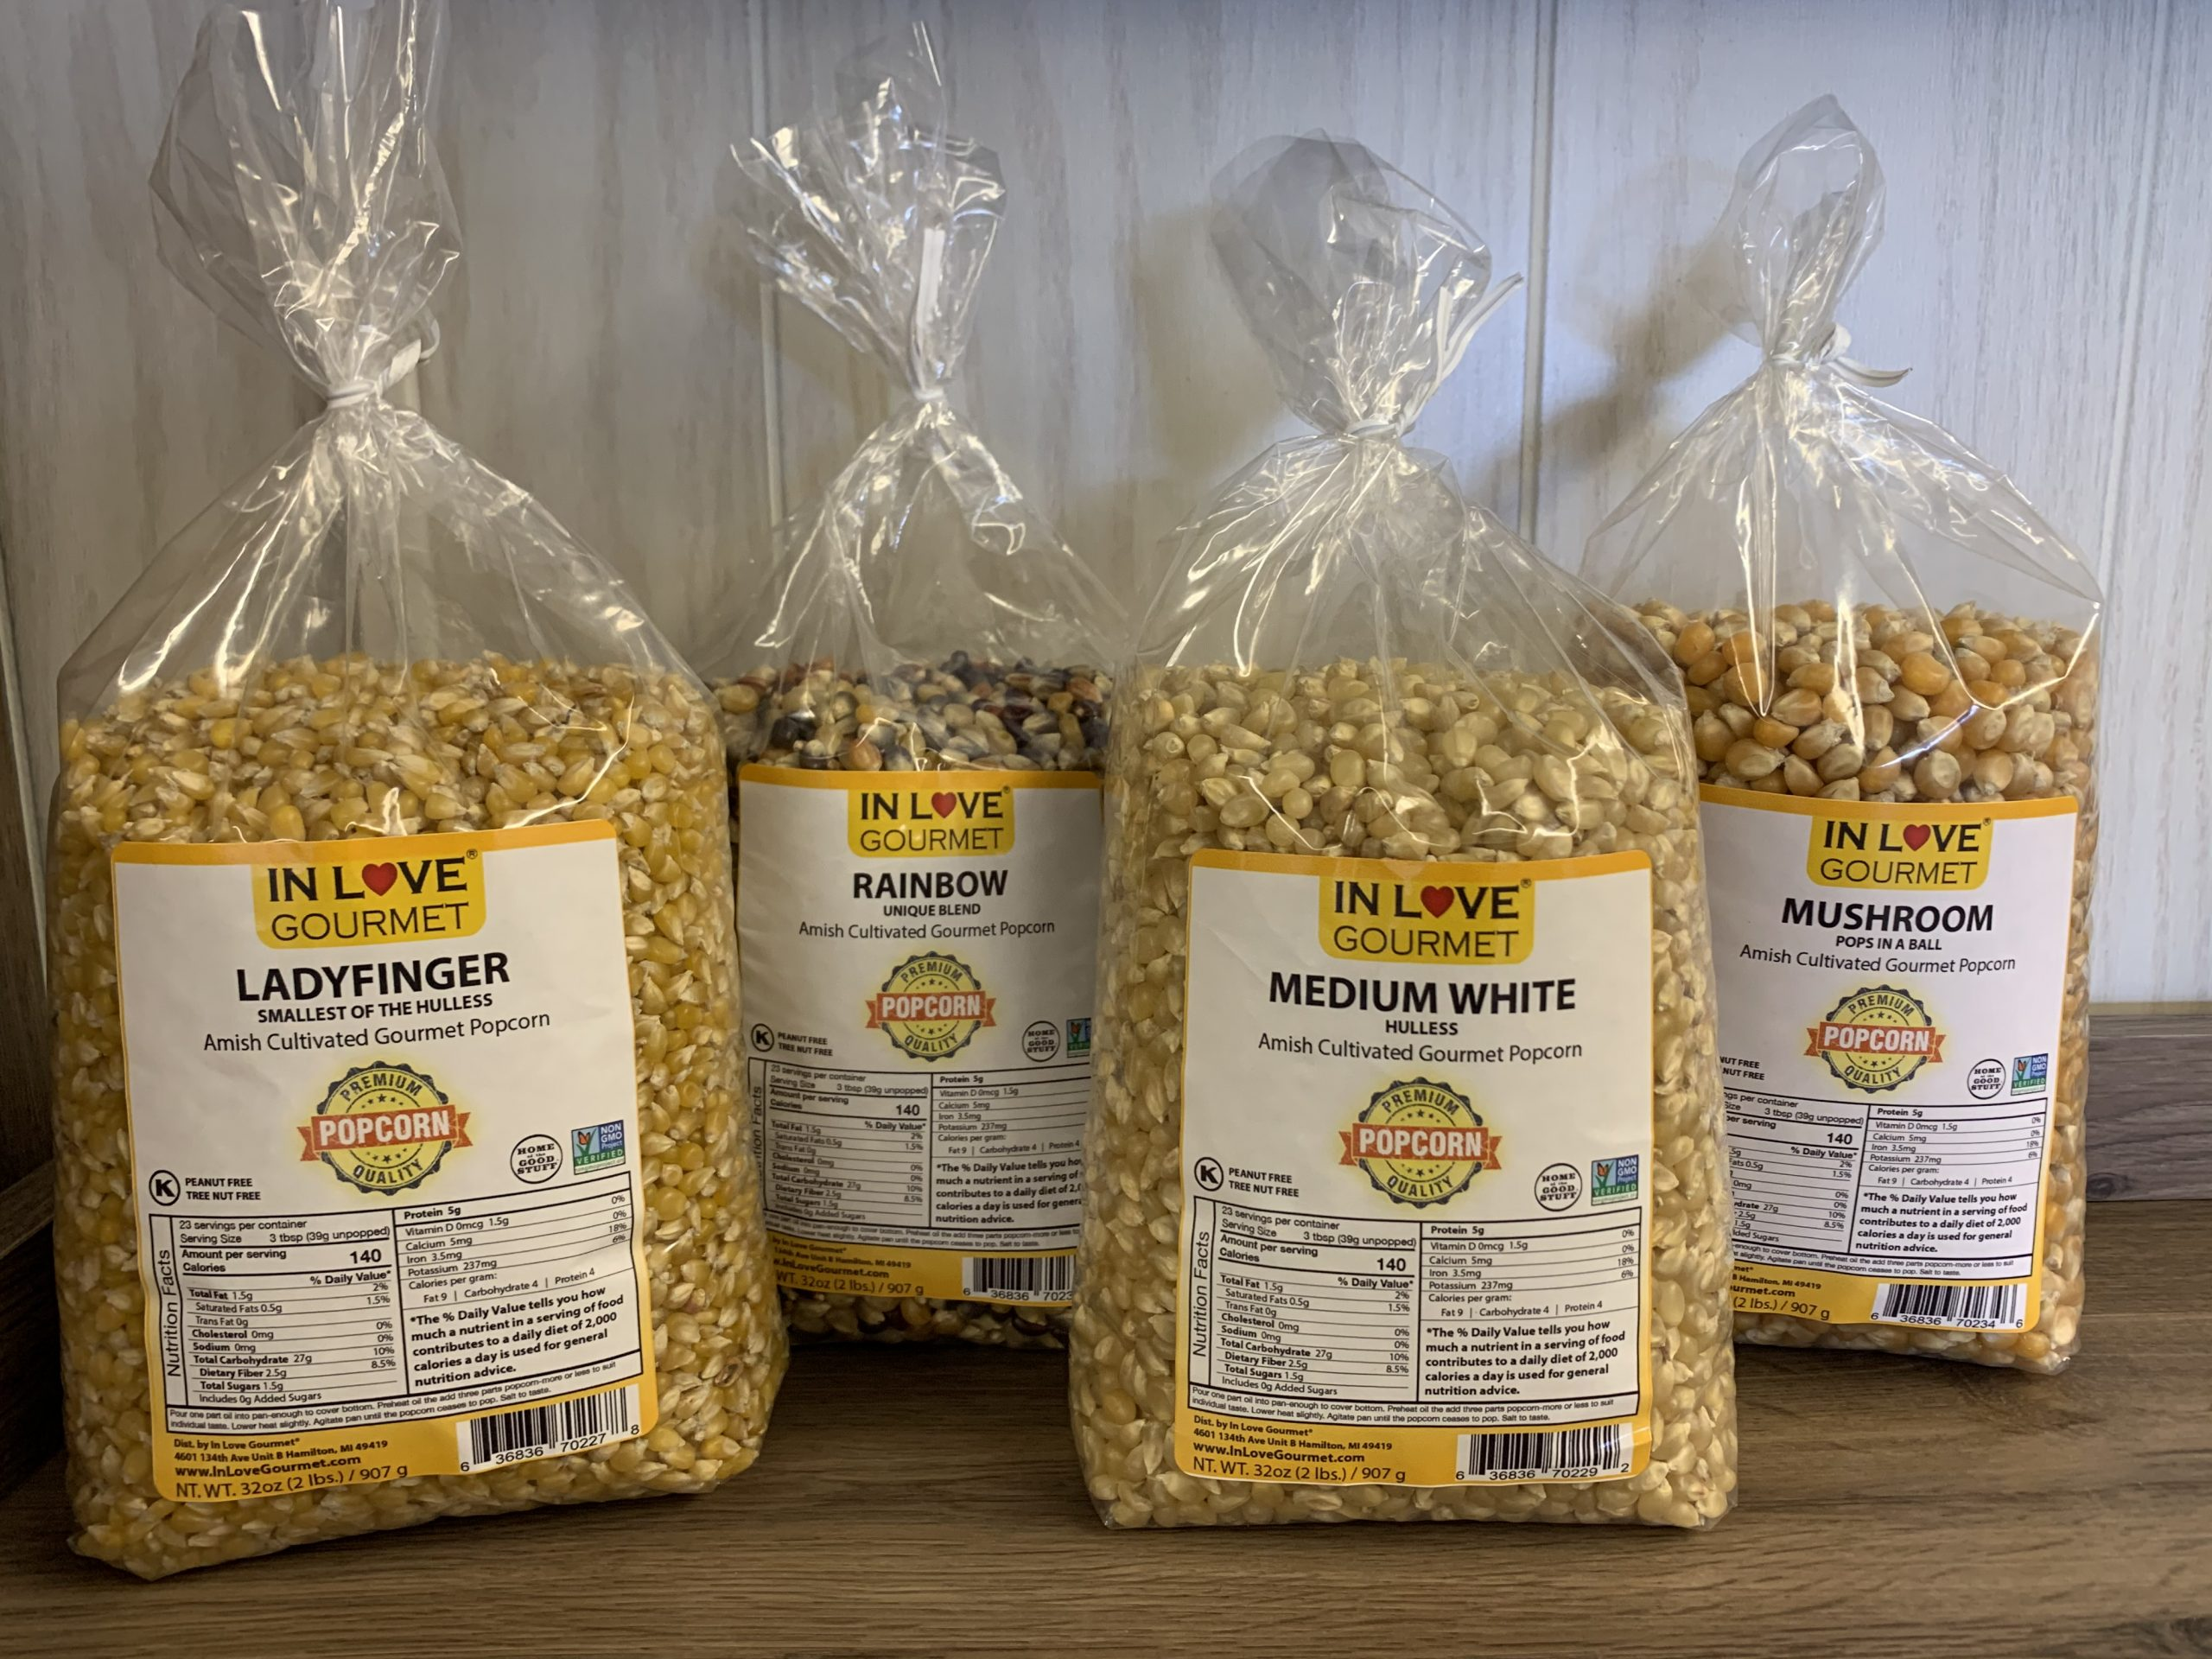 Gourmet Amish Popcorn 2lb Bag 4-PK - Create Your Own Custom 4 Pack